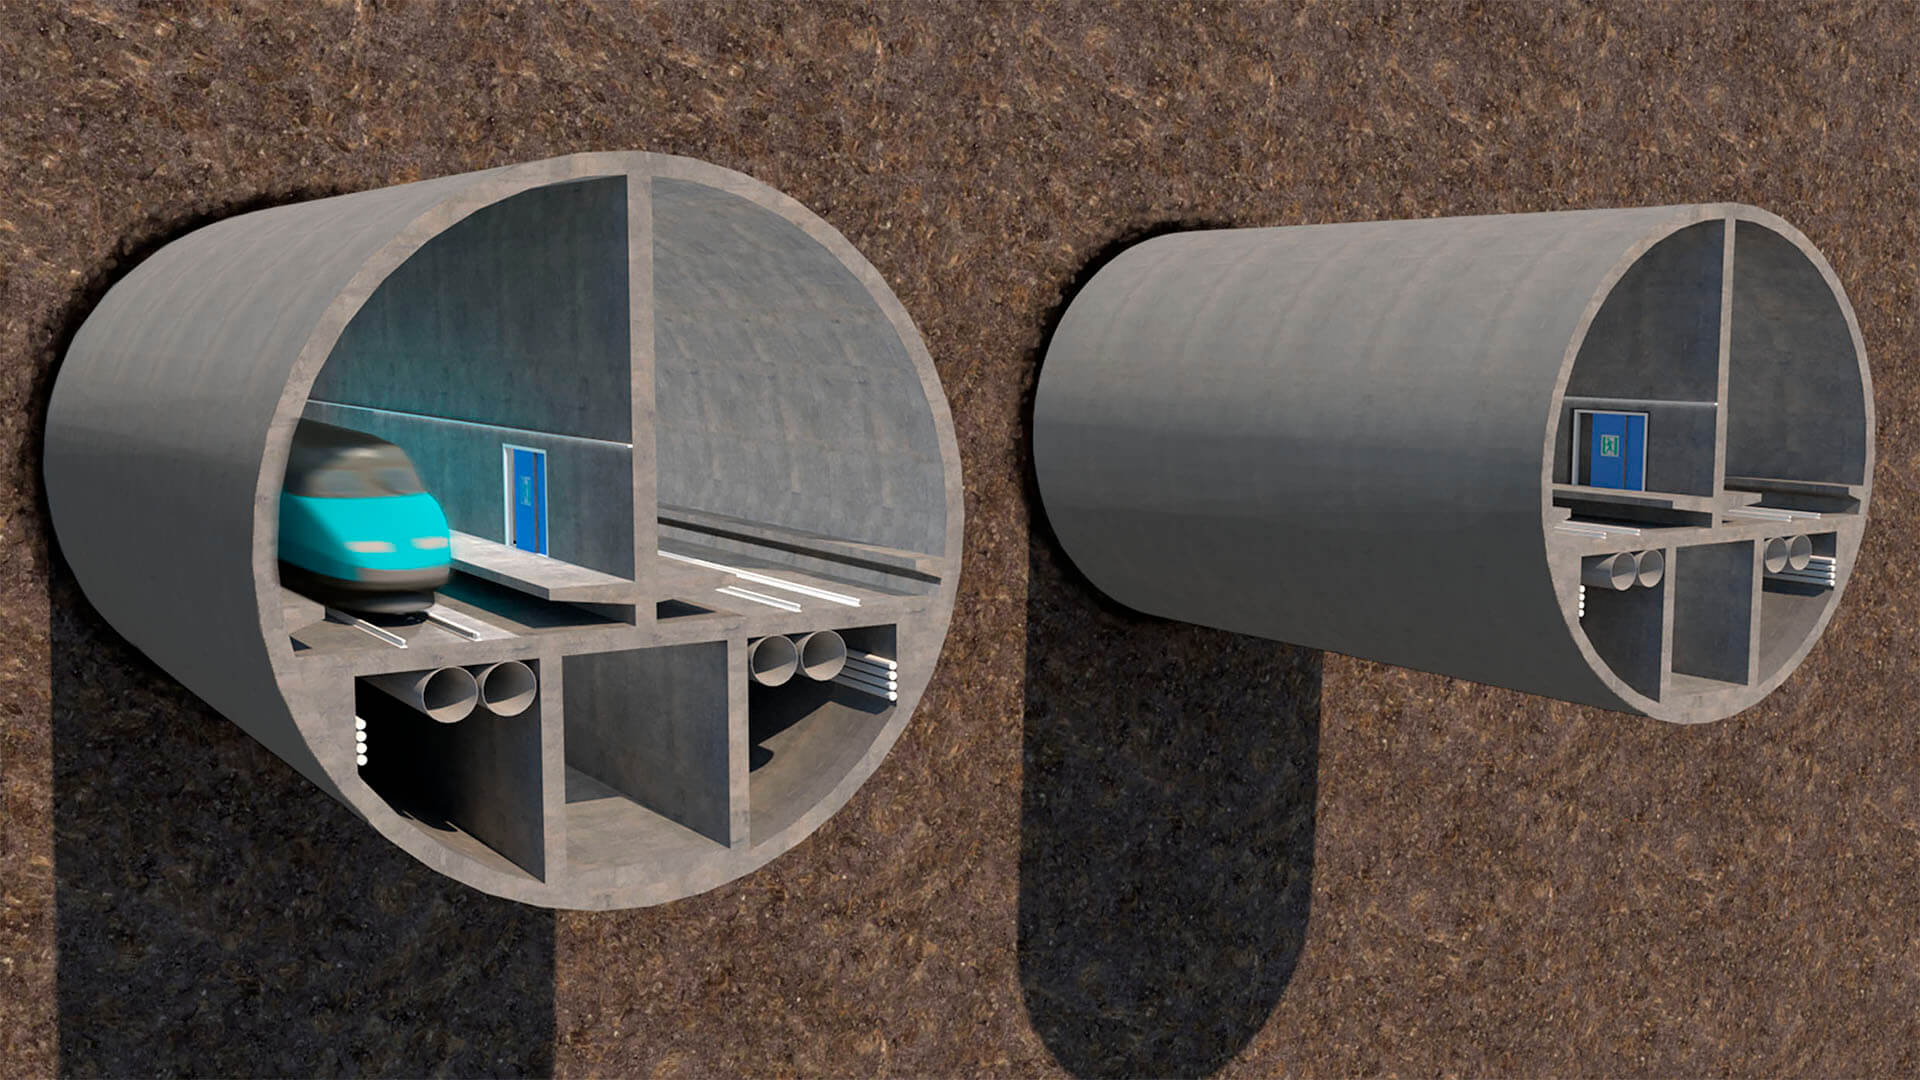 AINS Group and Pöyry are preparing for the next engineering phase of the railway tunnel between Finland and Estonia